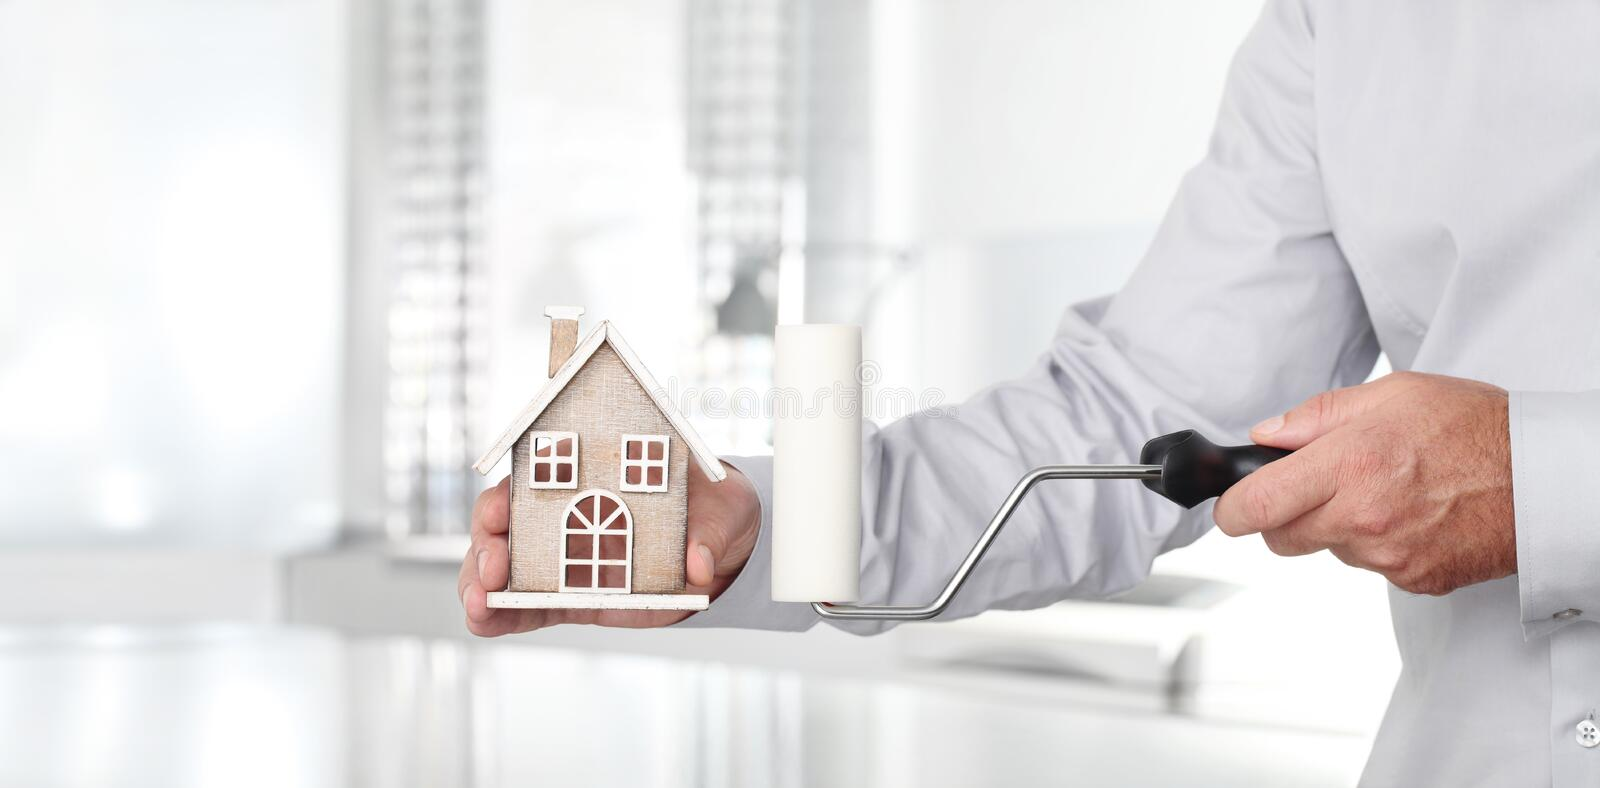 Hands with house and paint roller, home services concept stock photo